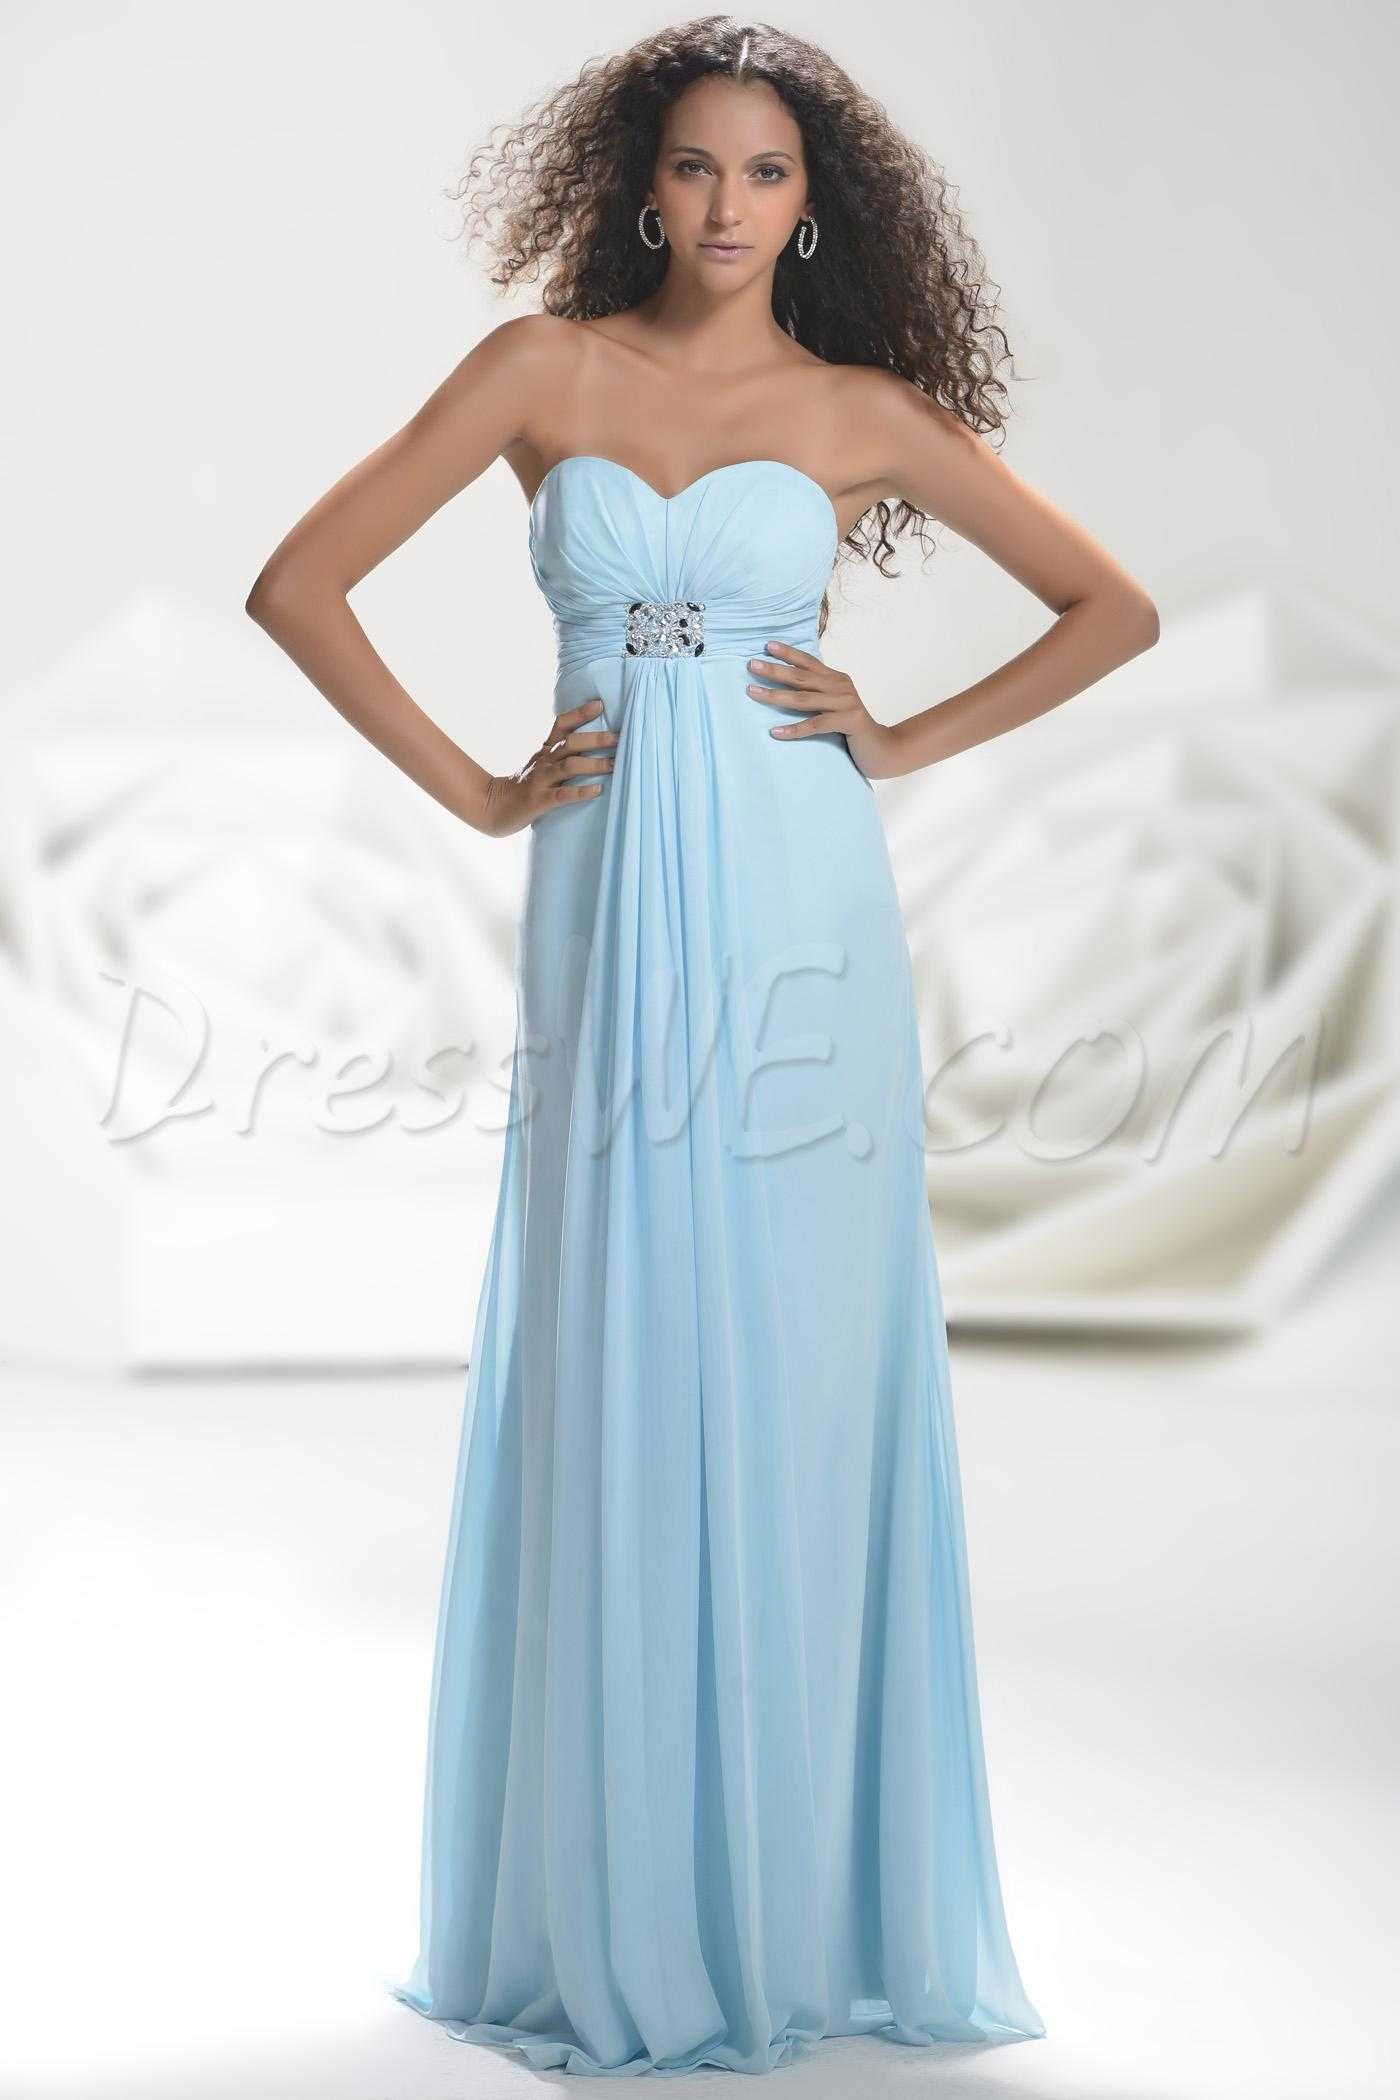 The Best of Modern Prom Dresses or Just an Elegant Night Wear ...